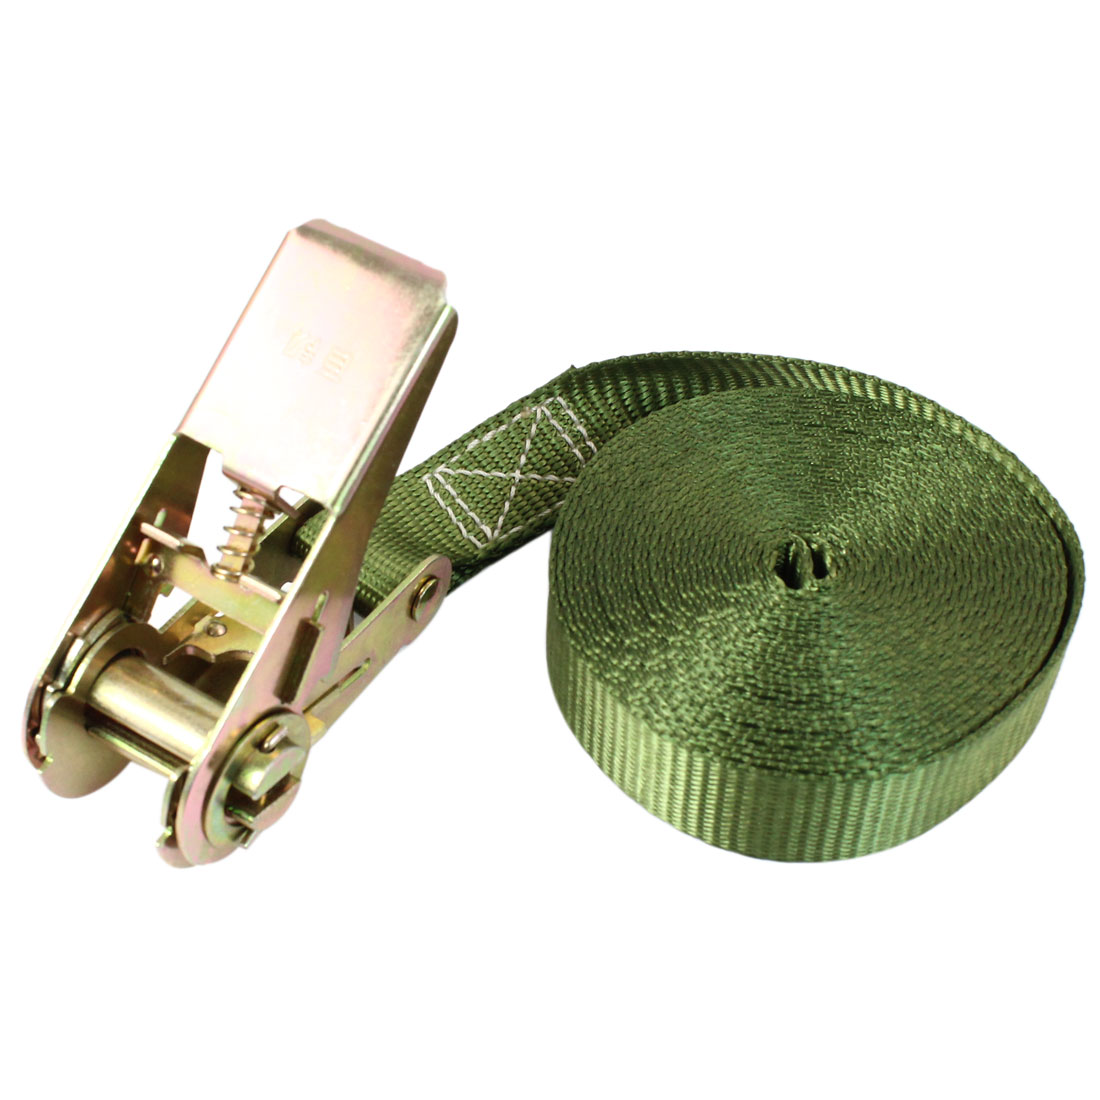 Travel Luggage Binding Band Metal Ratchet Tie Down Strap 5M 16ft Green